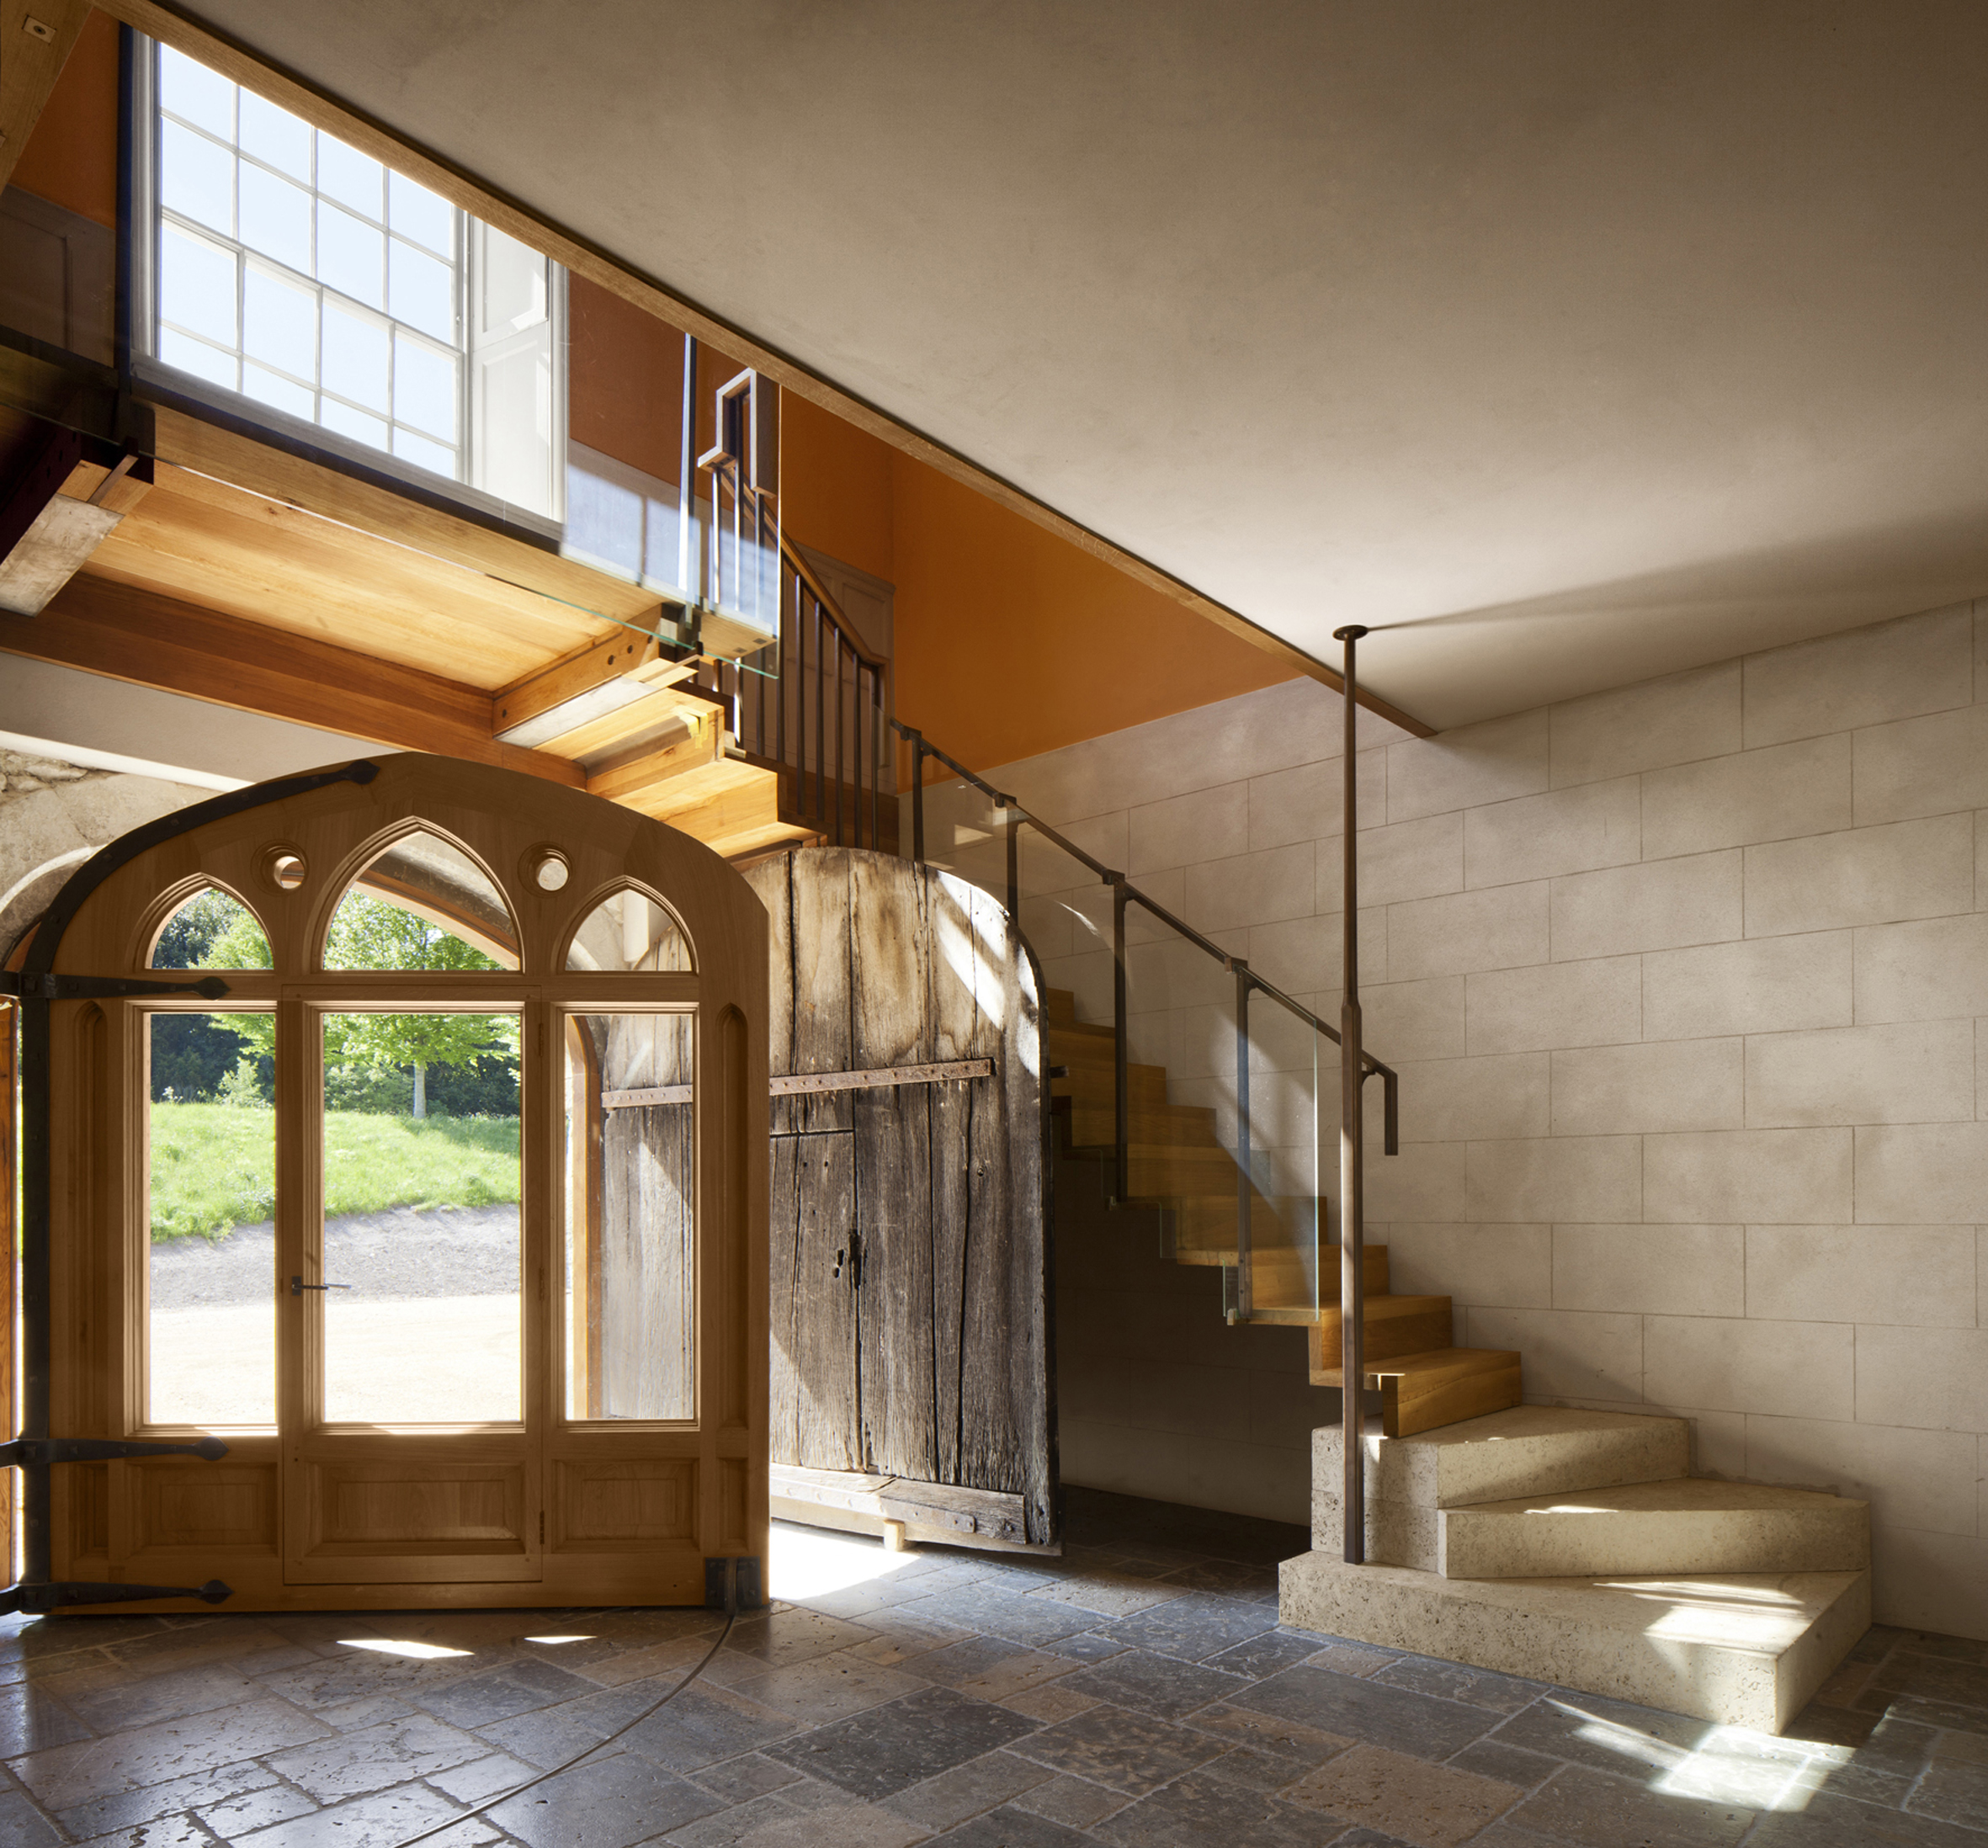 Glynde Place - Phase I - Finished Entrance Hall - Country Life Picture Library (Will Pryce).jpg